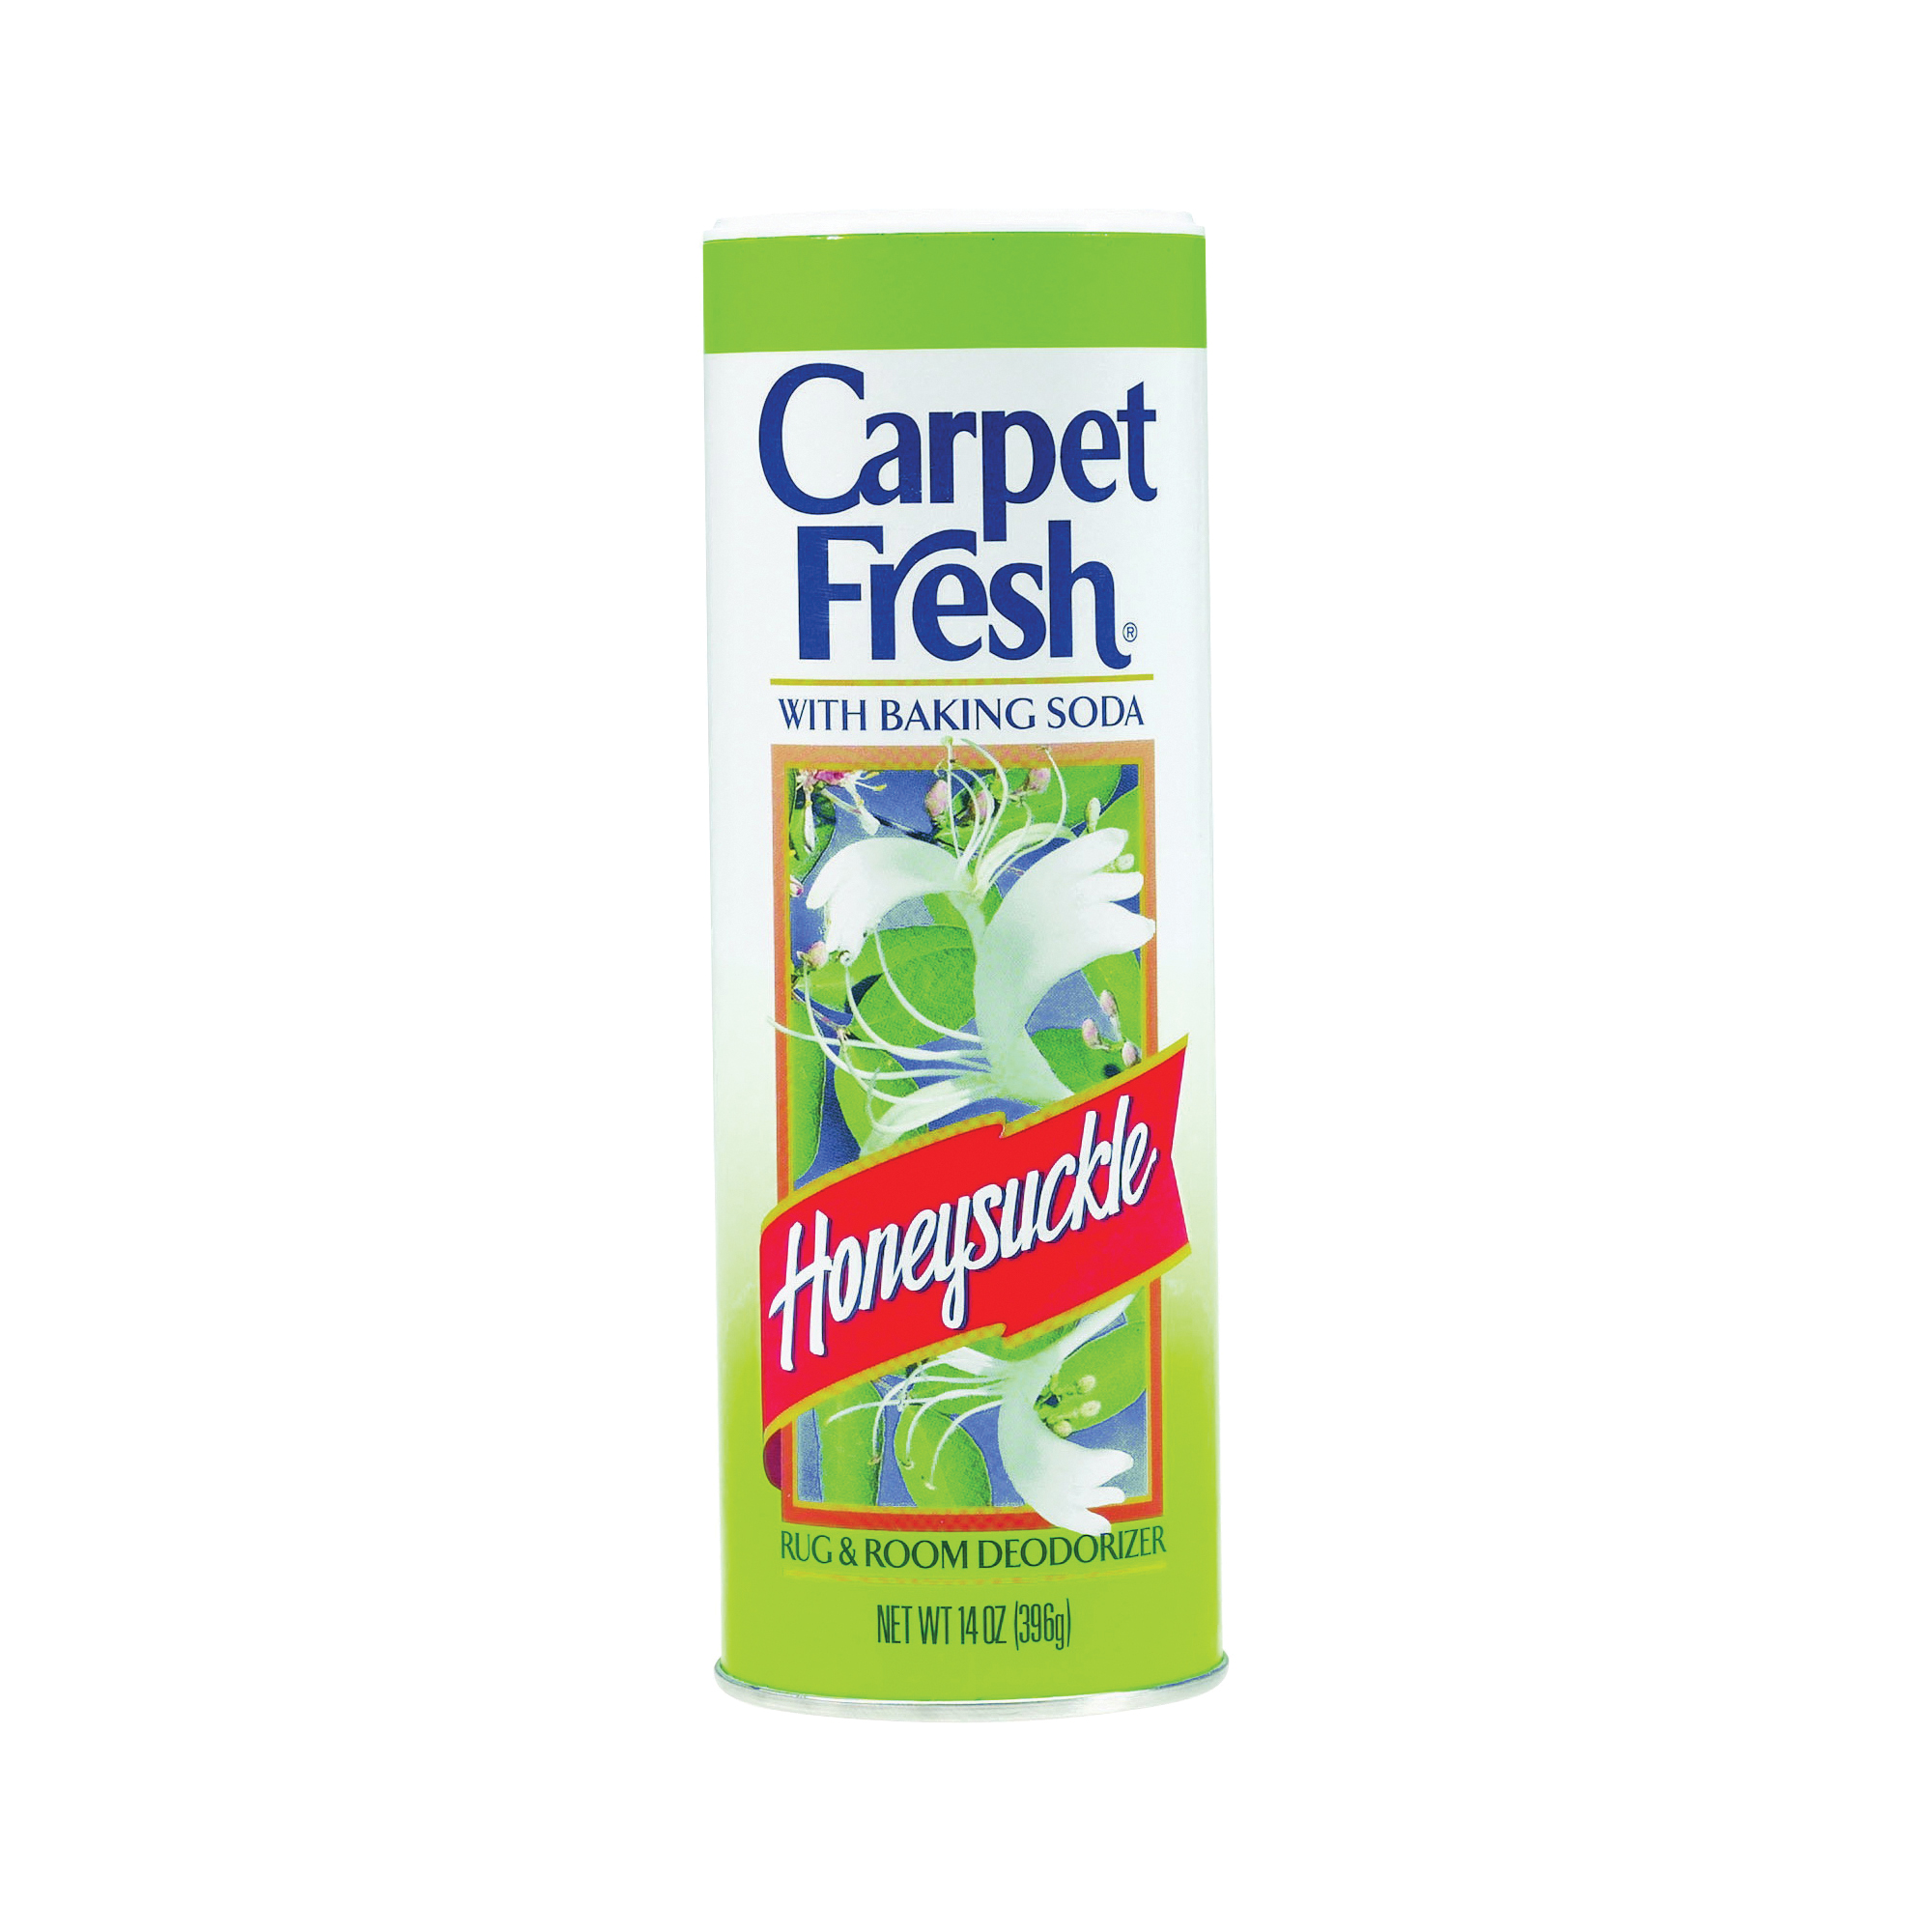 Picture of Carpet Fresh 275149 Carpet and Room Deodorizer White, 14 oz Package, Can, Honeysuckle, White